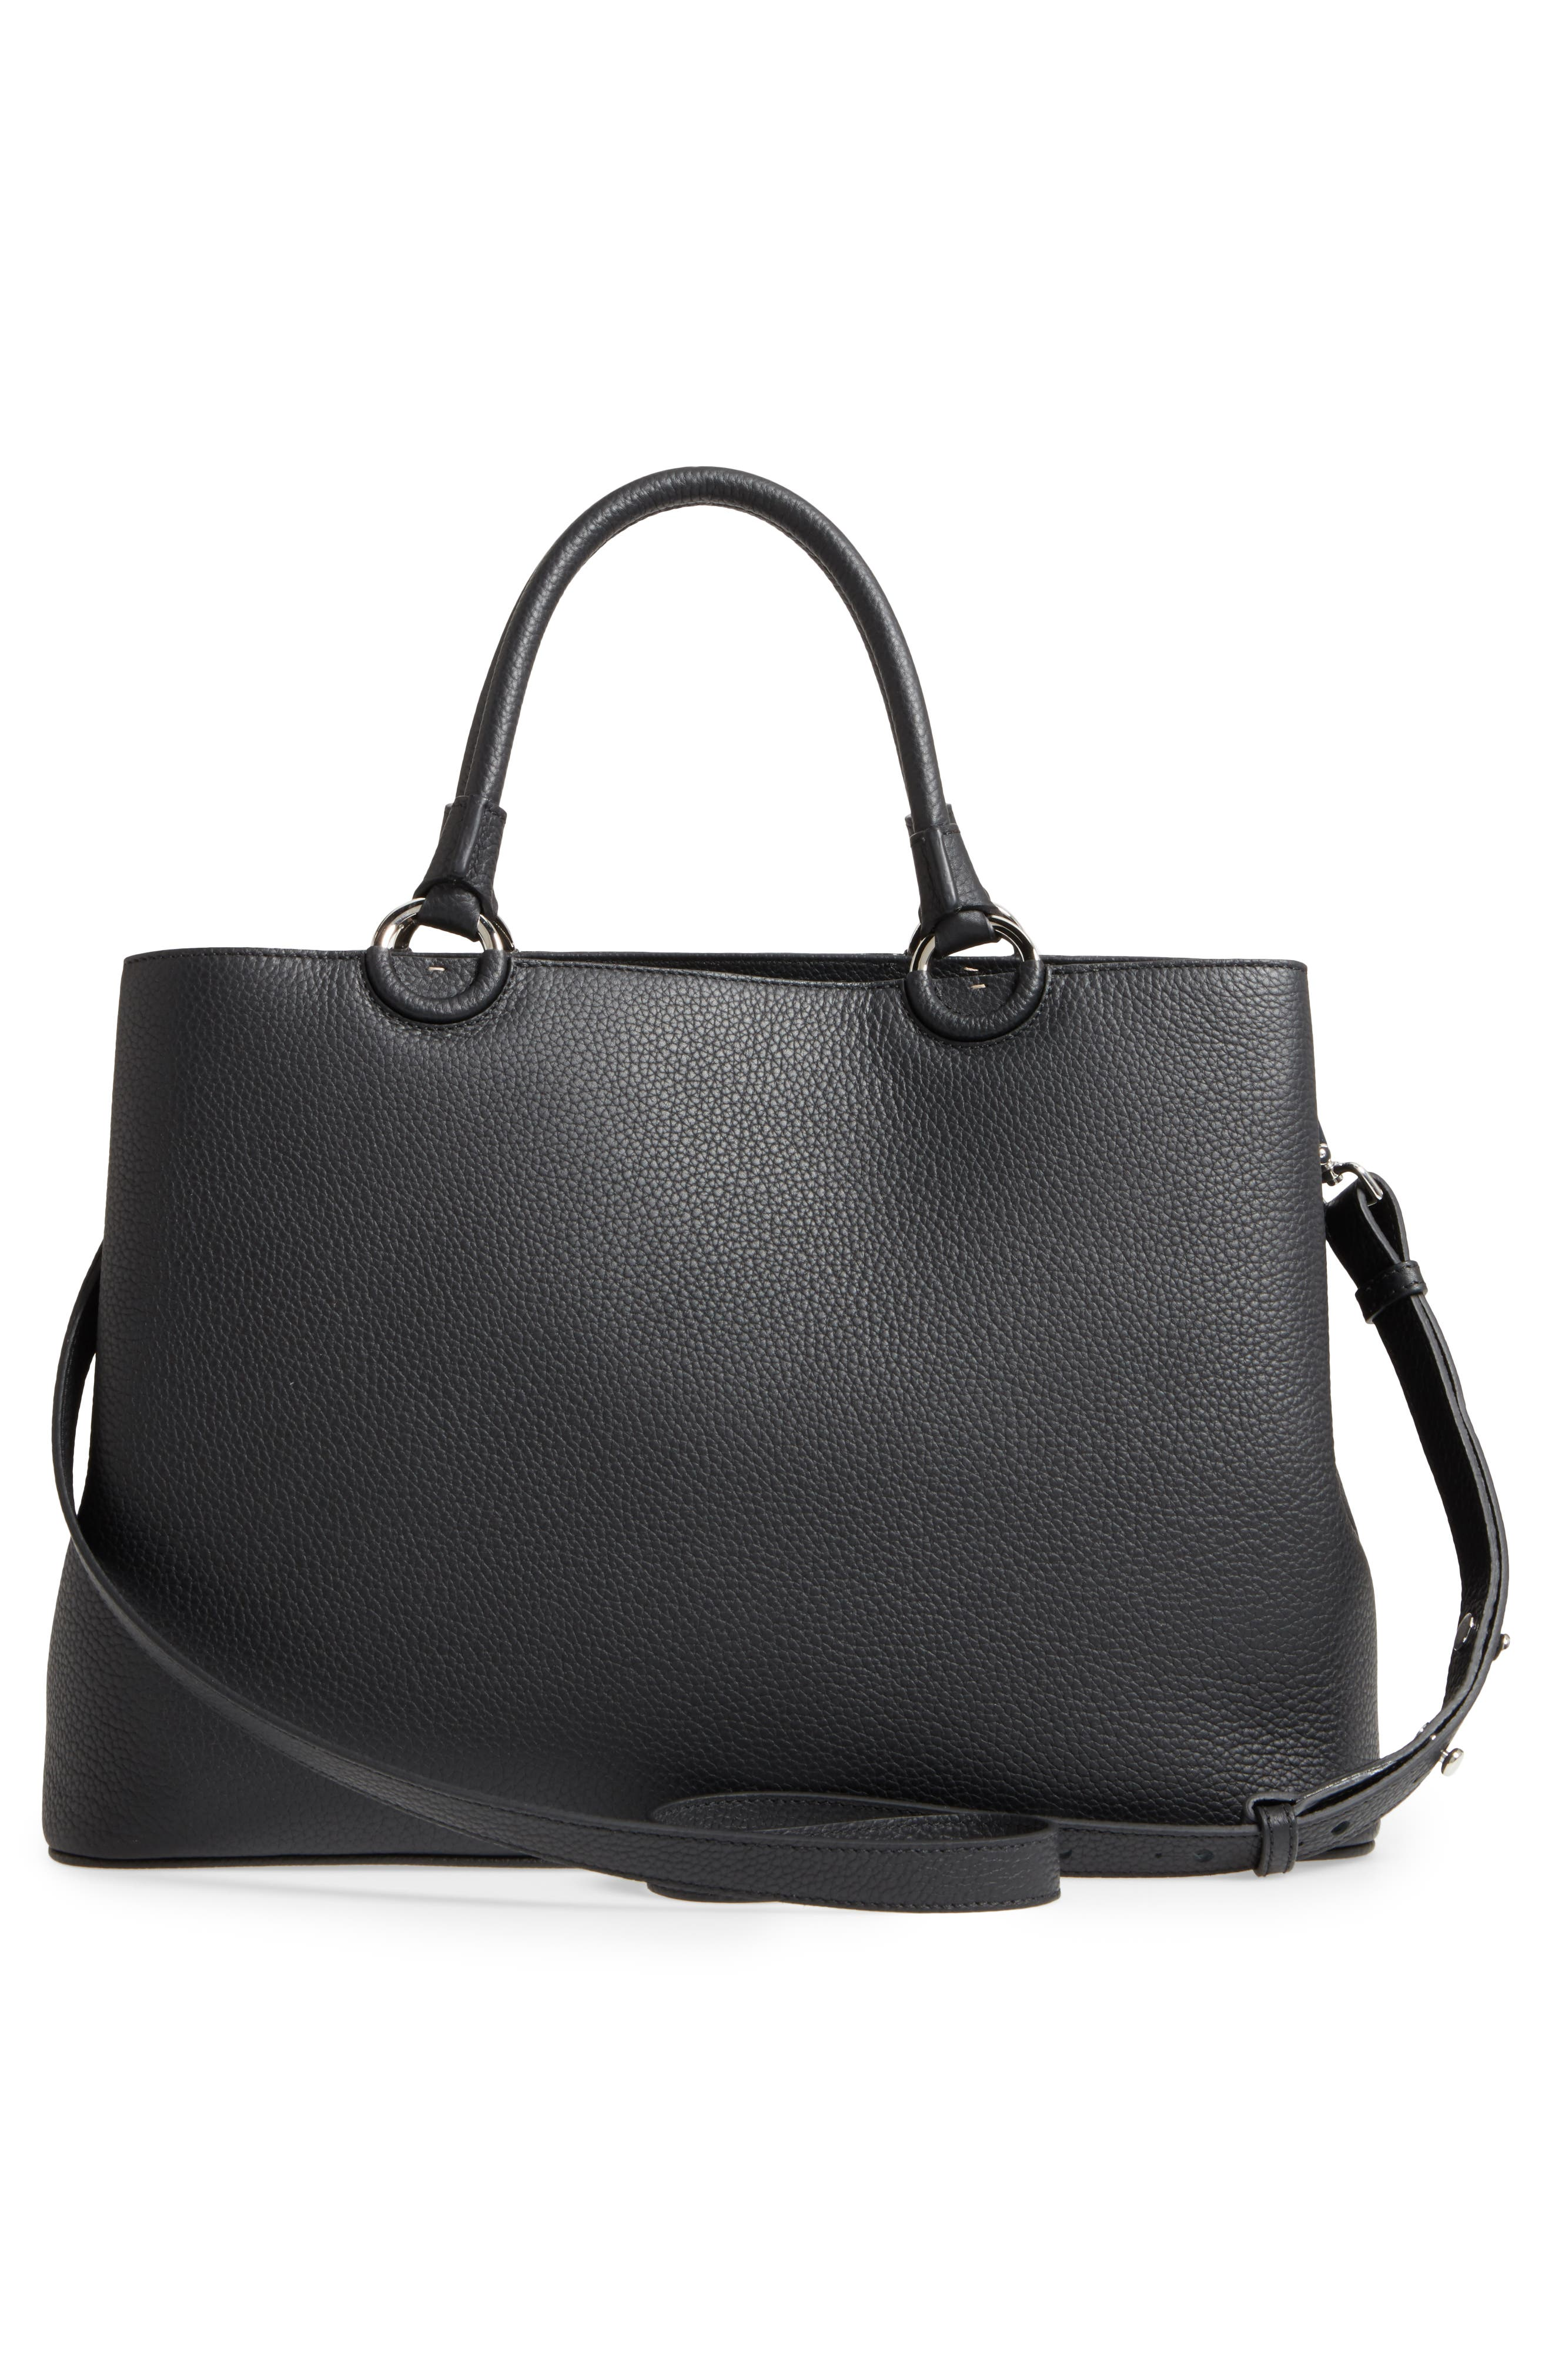 Veronica Cachemire Leather Tote,                             Alternate thumbnail 3, color,                             001